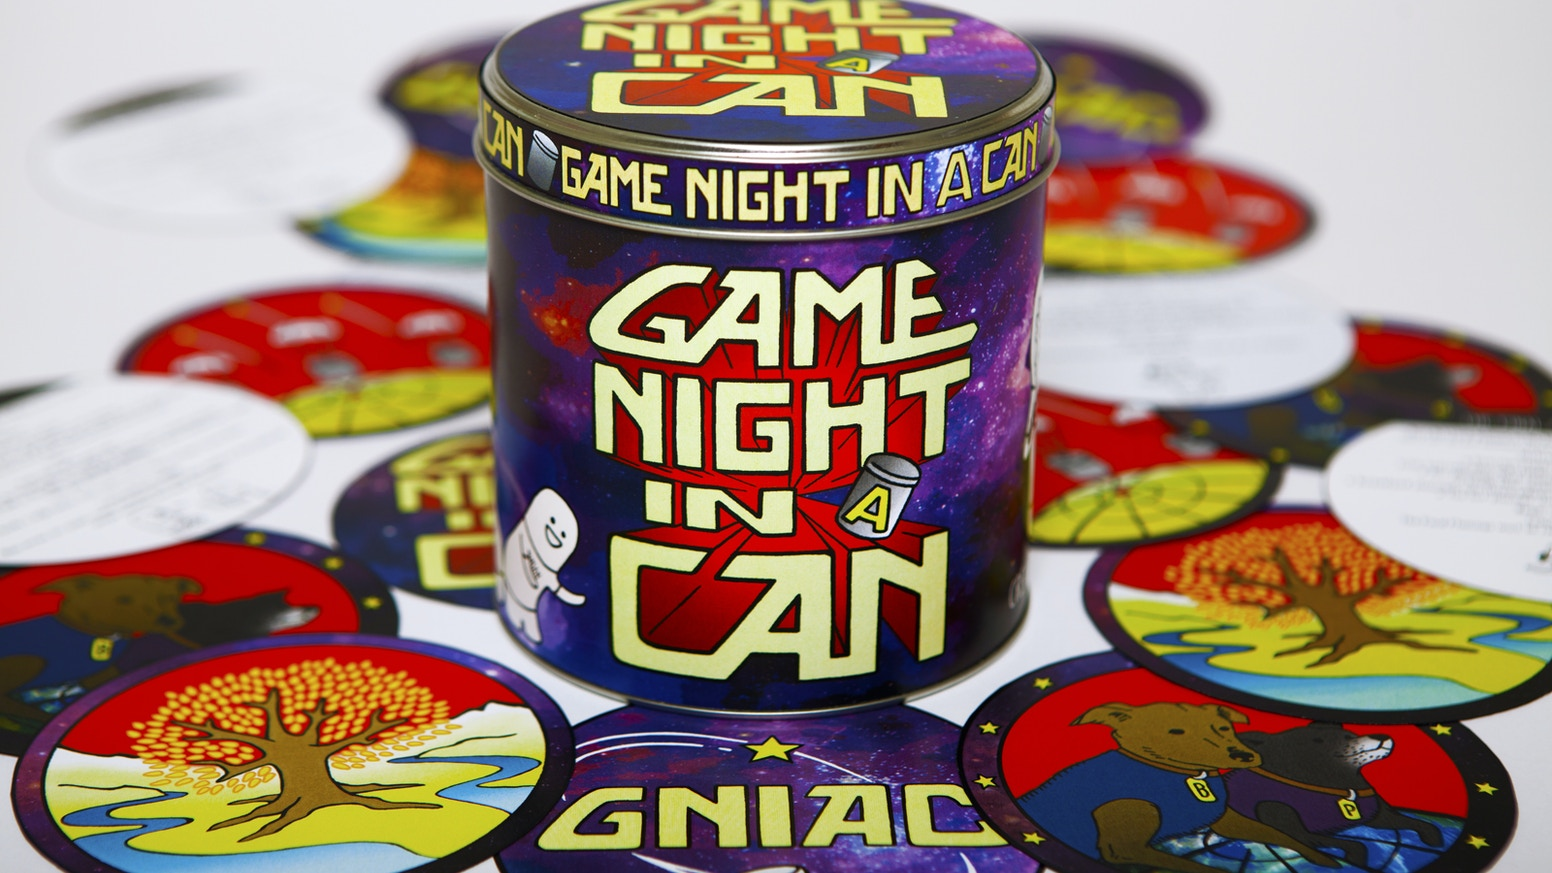 All you need is Paper, Pens, and a Handful of Friends. For the greatest game nights of your life...